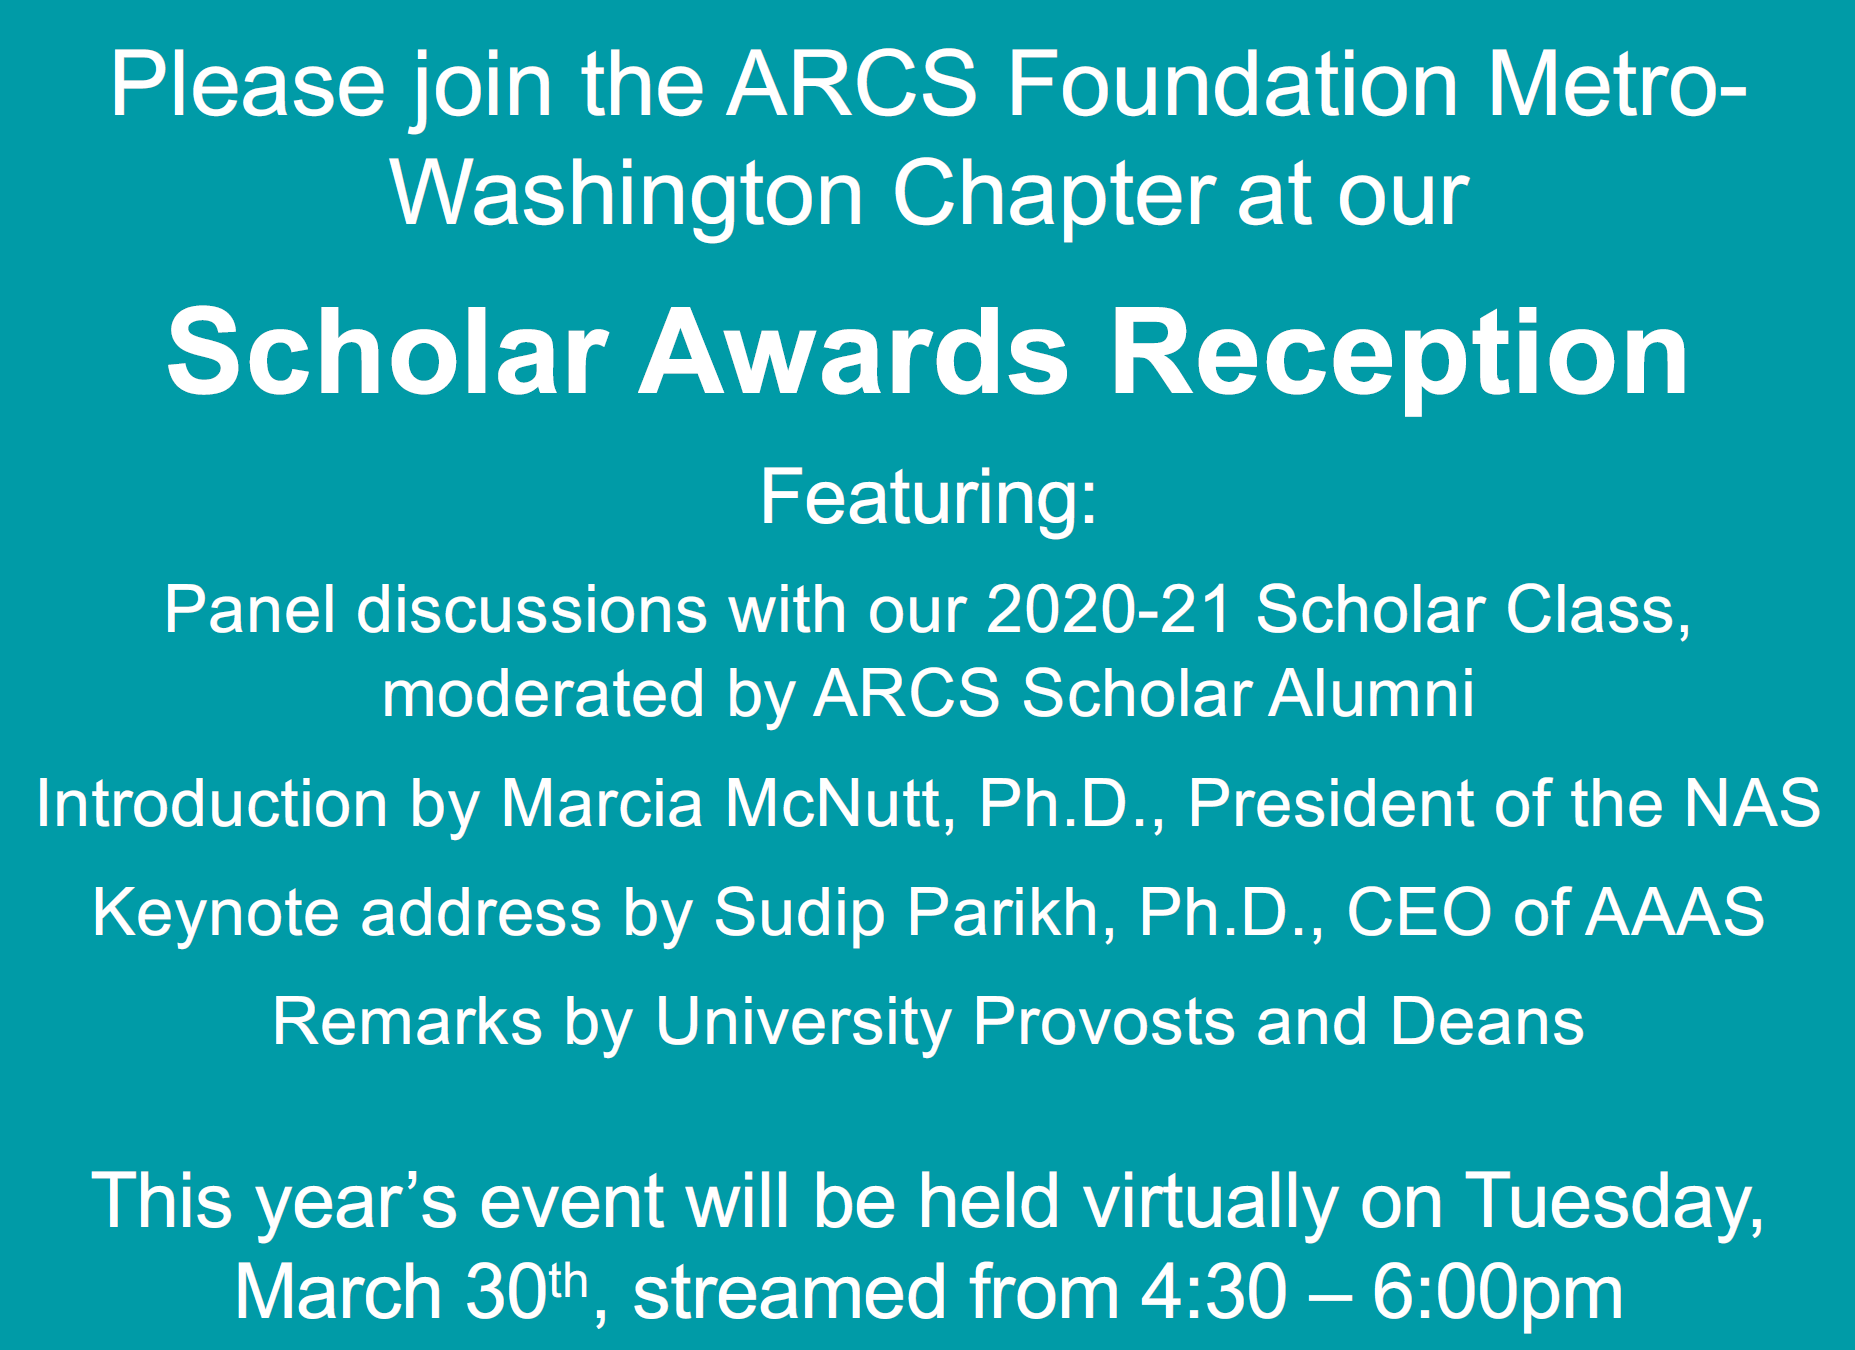 ARCS-MWC 2021 Scholar Award Reception